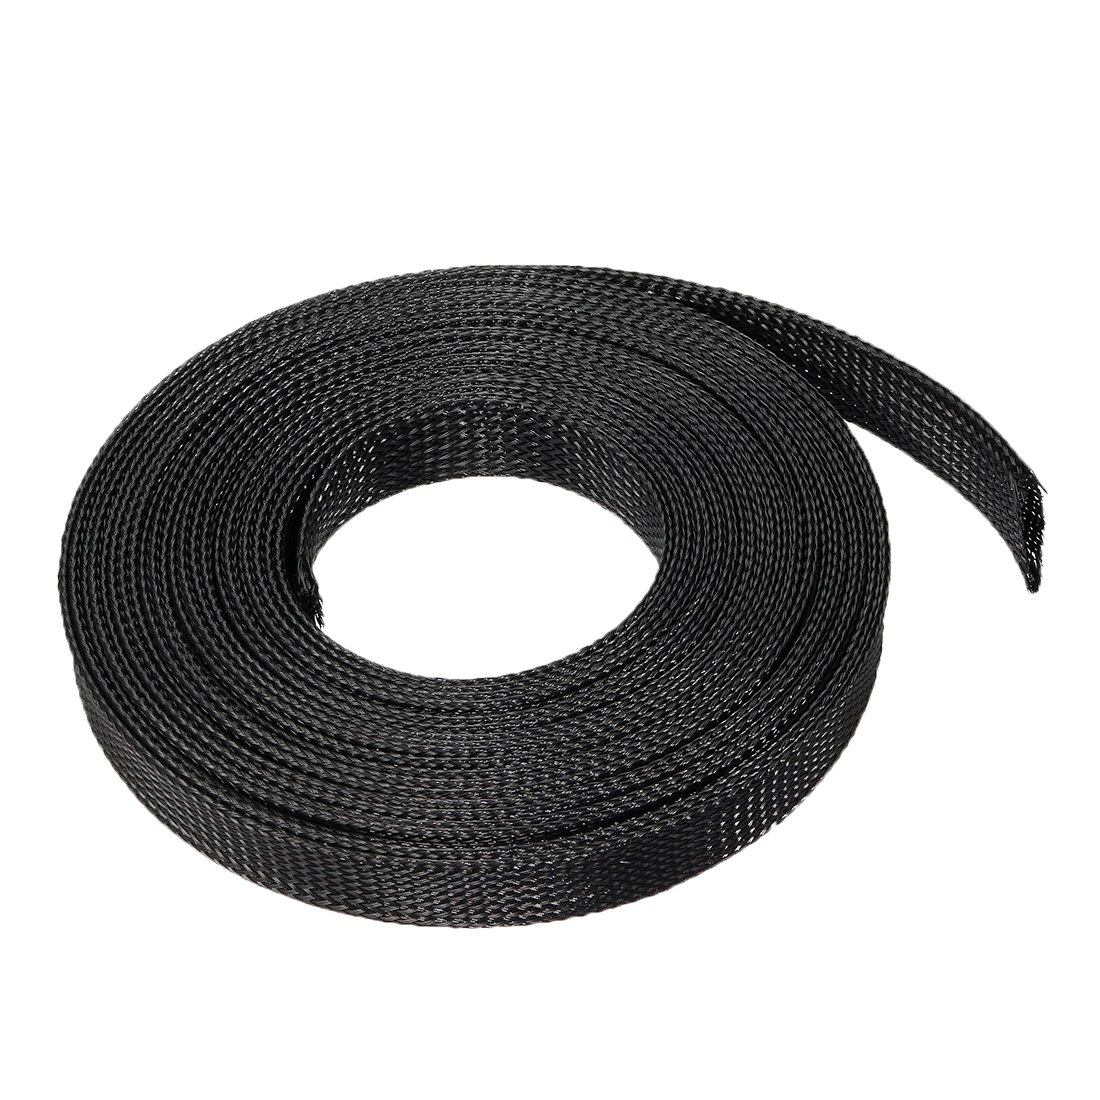 sourcing map 10m PET Expandable Braided Sleeving 32.8ft 18mm Dia Cable Management Sleeve Cord Organizer for Wrap Protect Cables Black